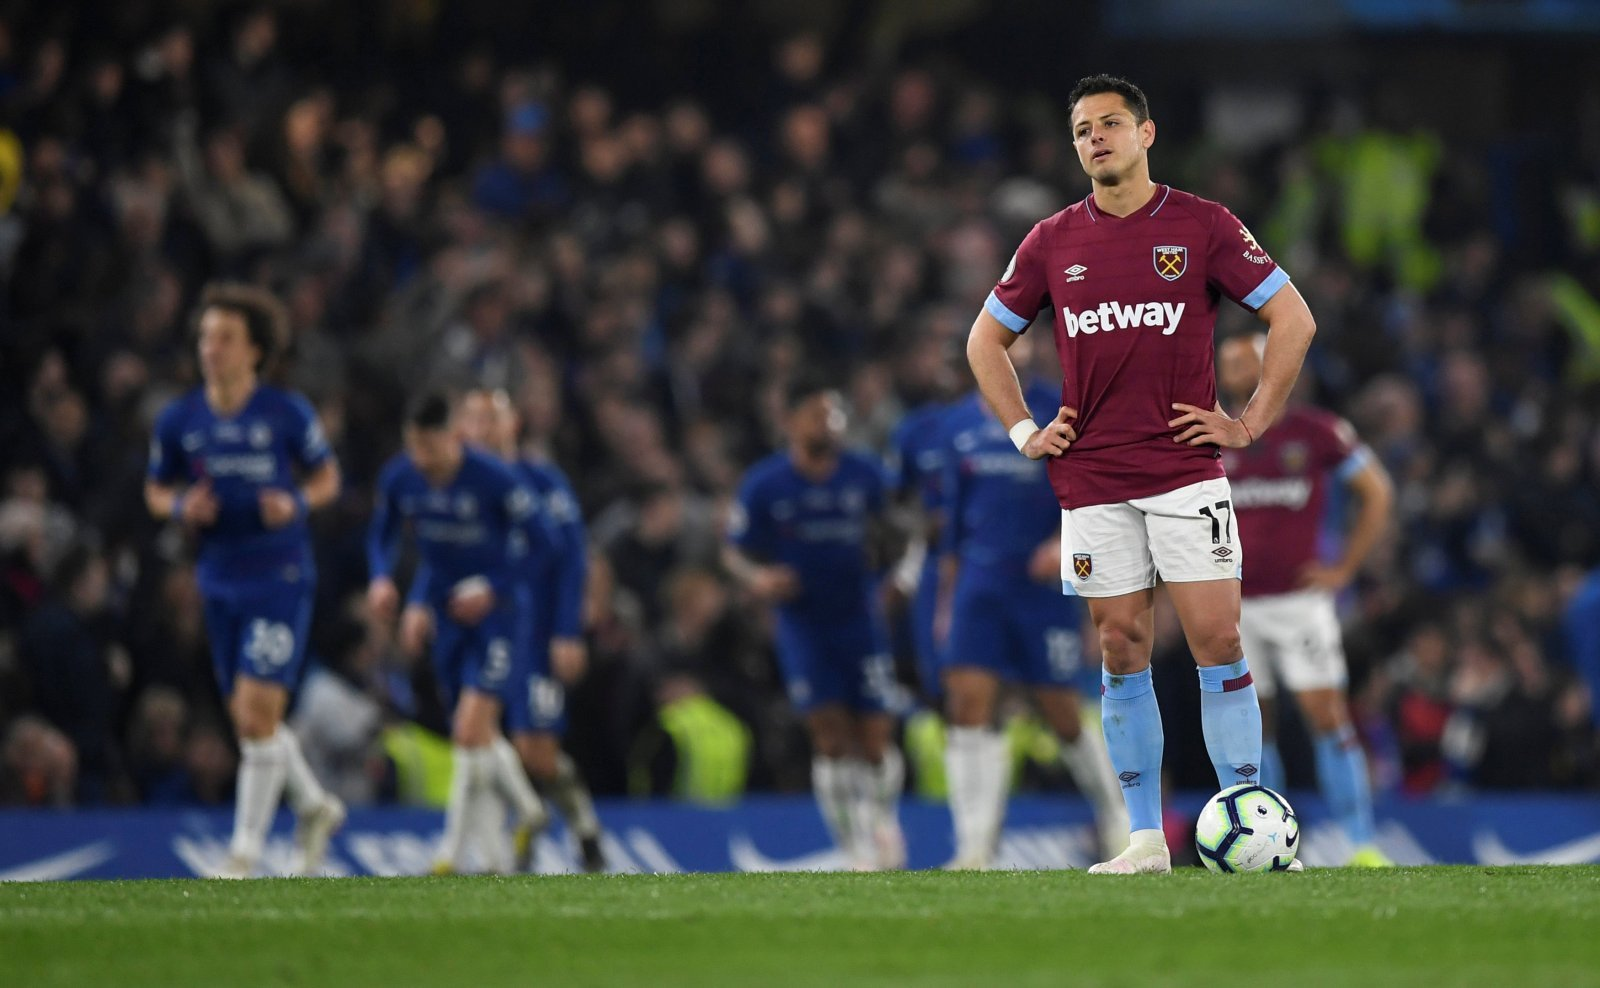 West Ham: Javier Hernandez's future for both club and country lies away from east London